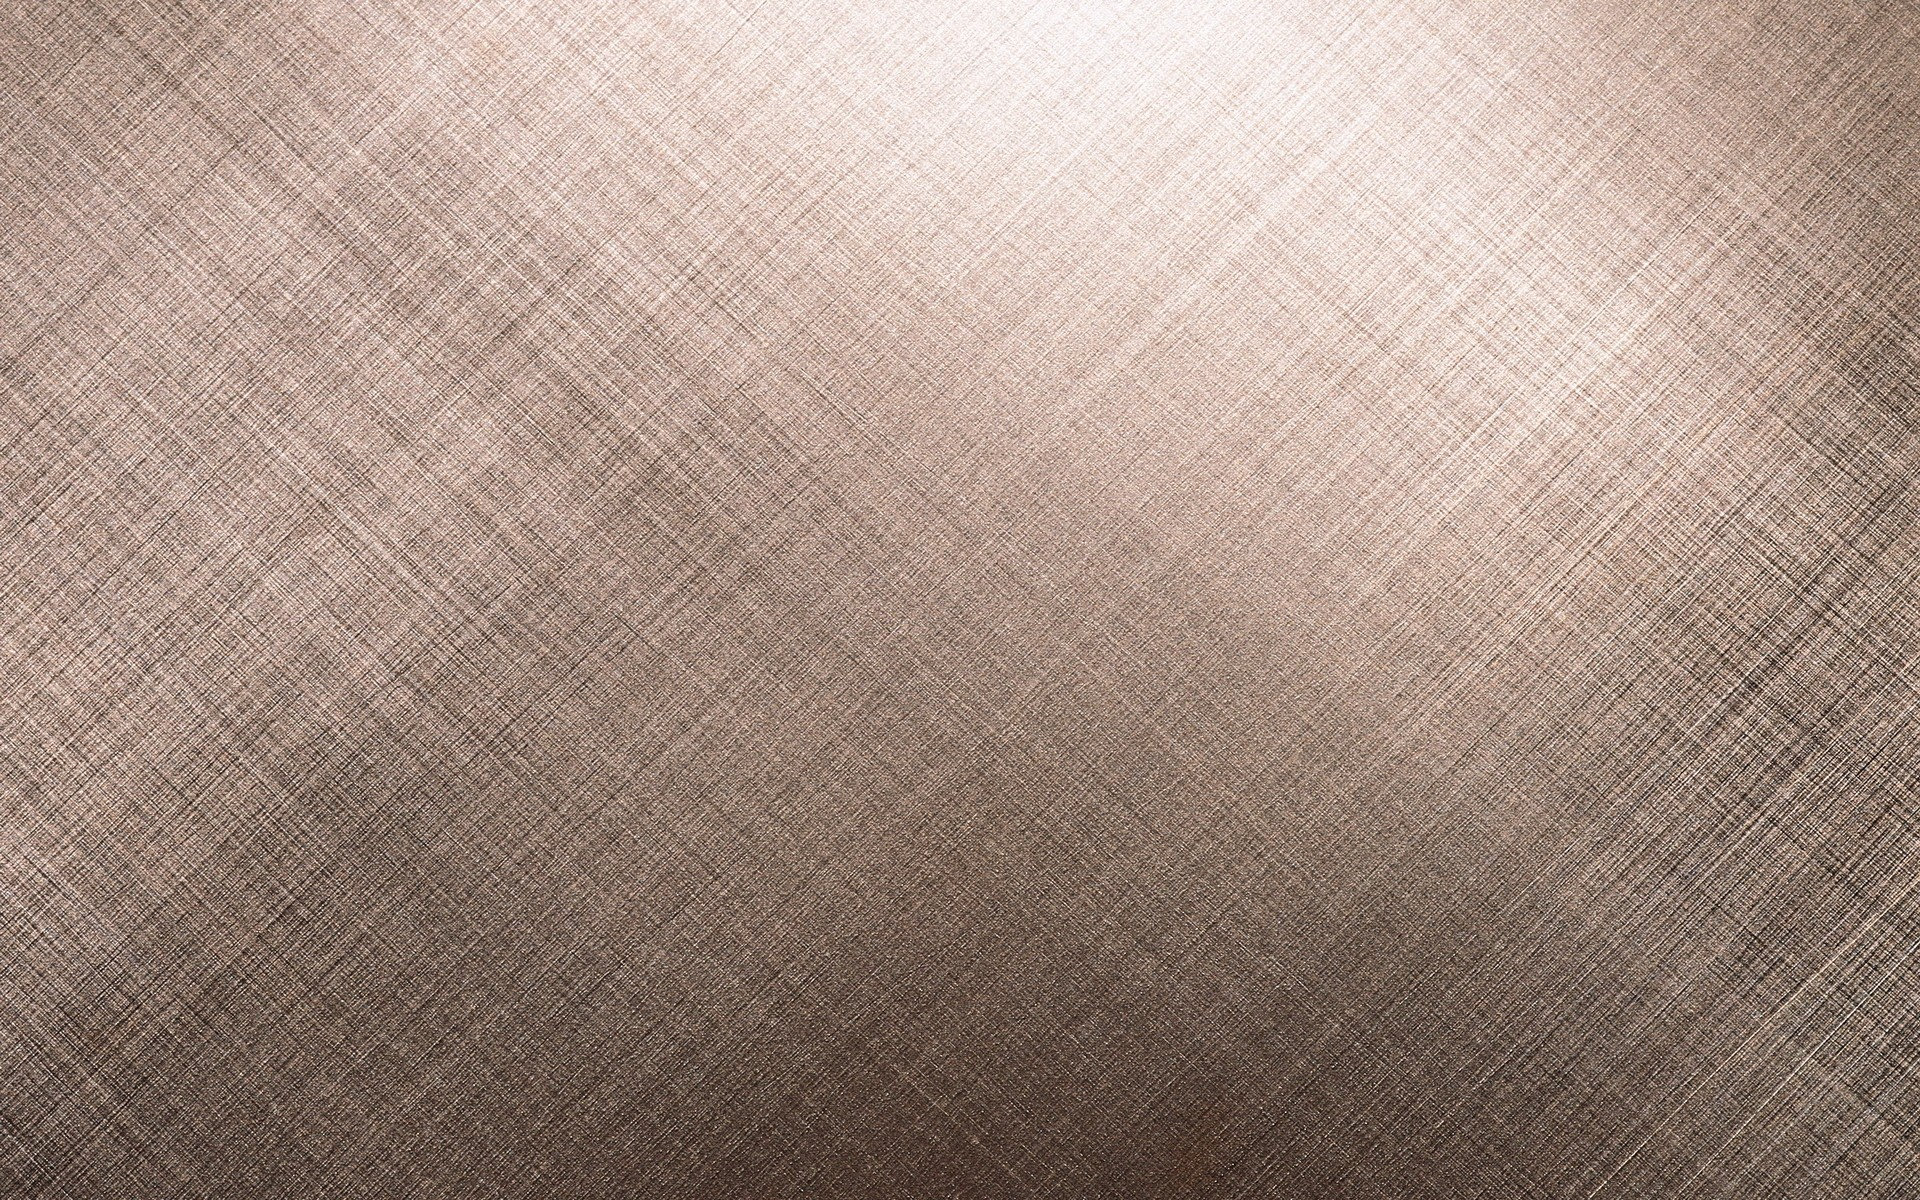 1920x1200 grunge fabric texture desktop pc and mac wallpaper